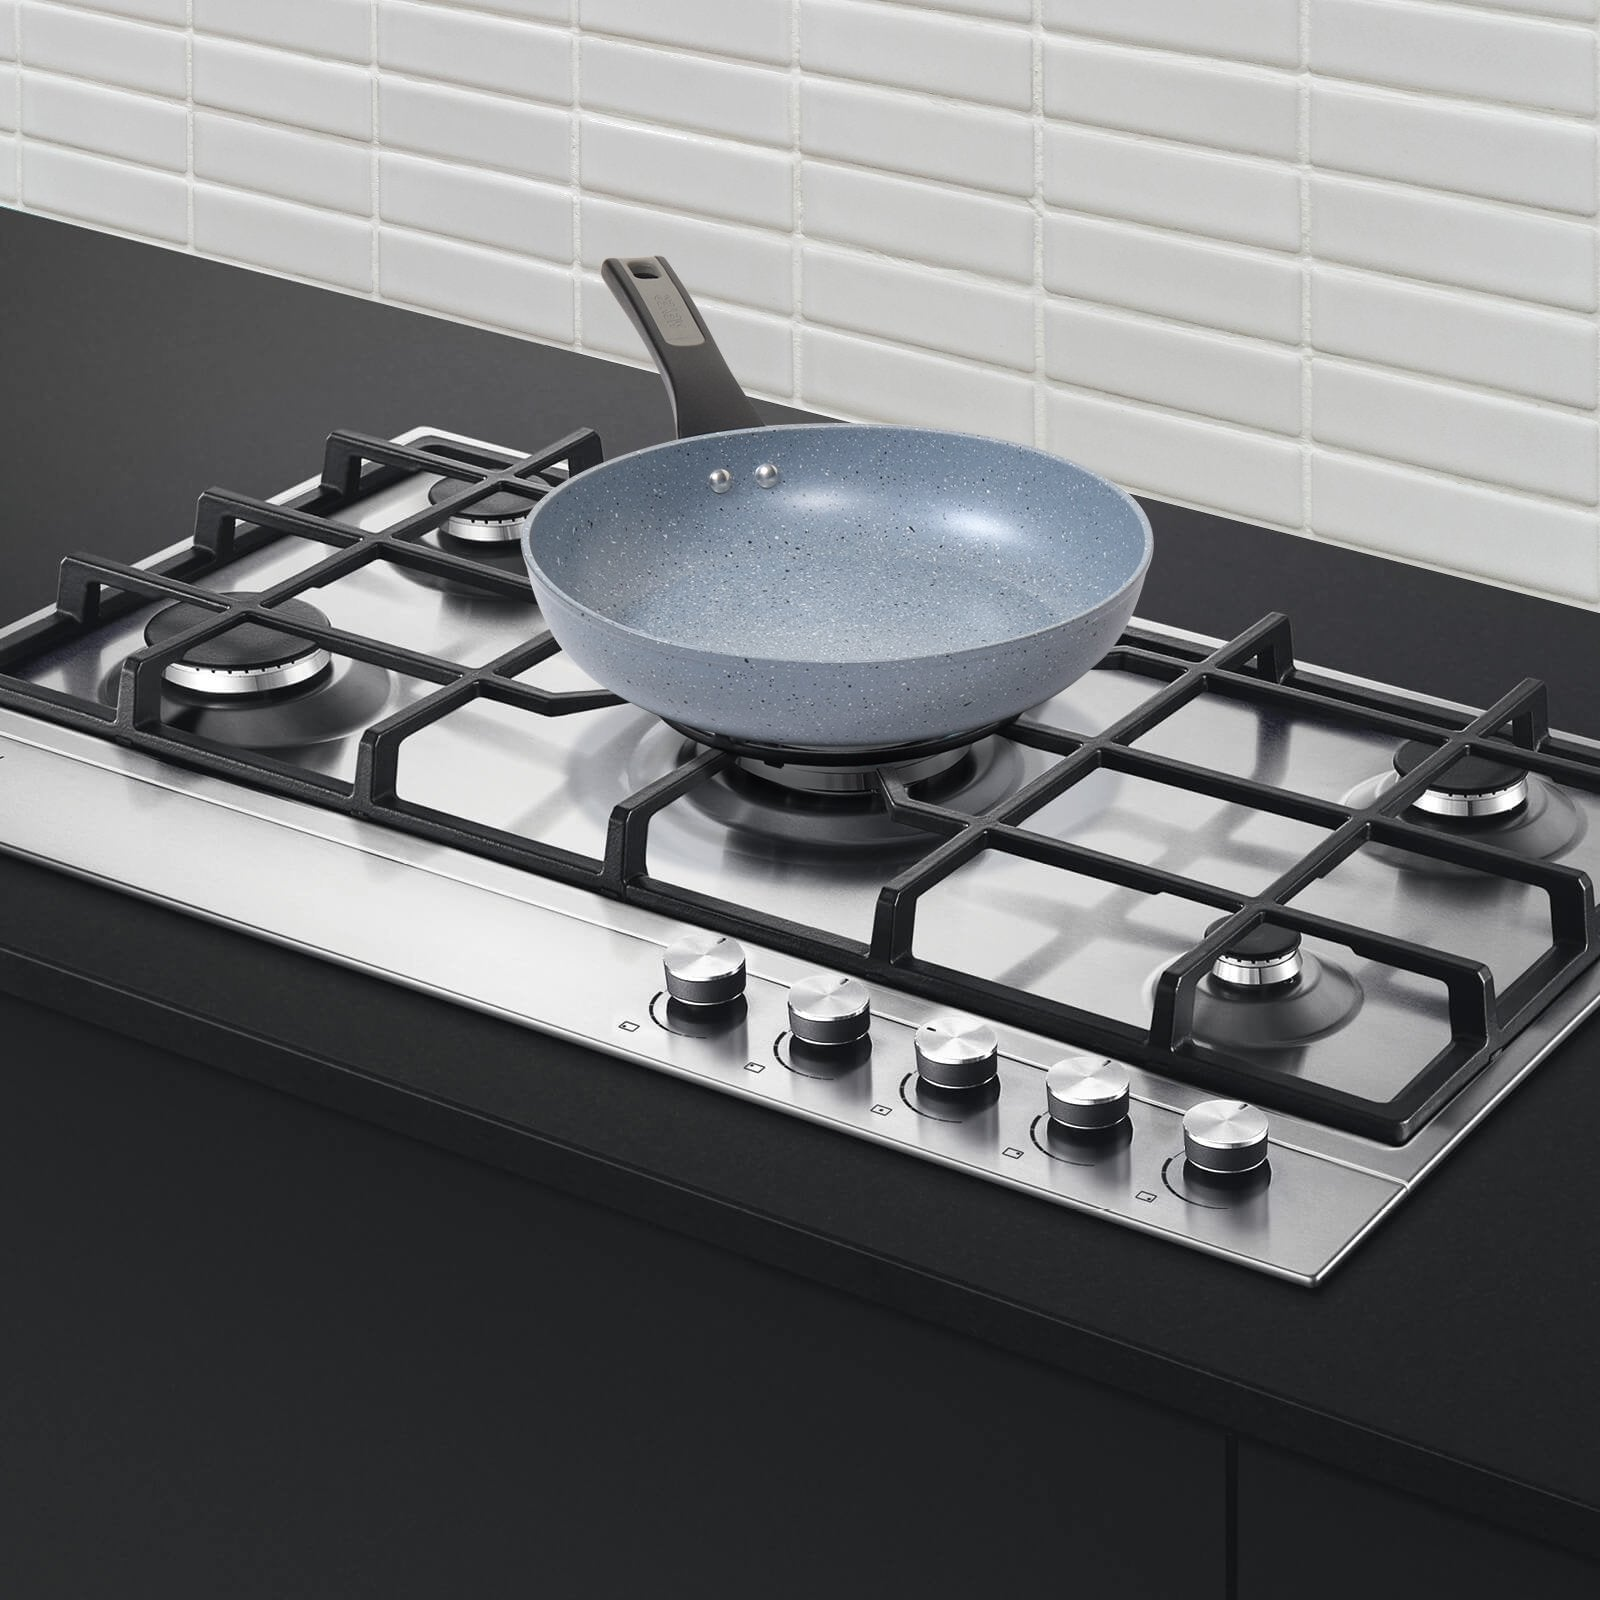 Forgestone Non-Stick Frypan 25cm, Stone Grey [Induction & Gas Compatible] - Pots and Pans